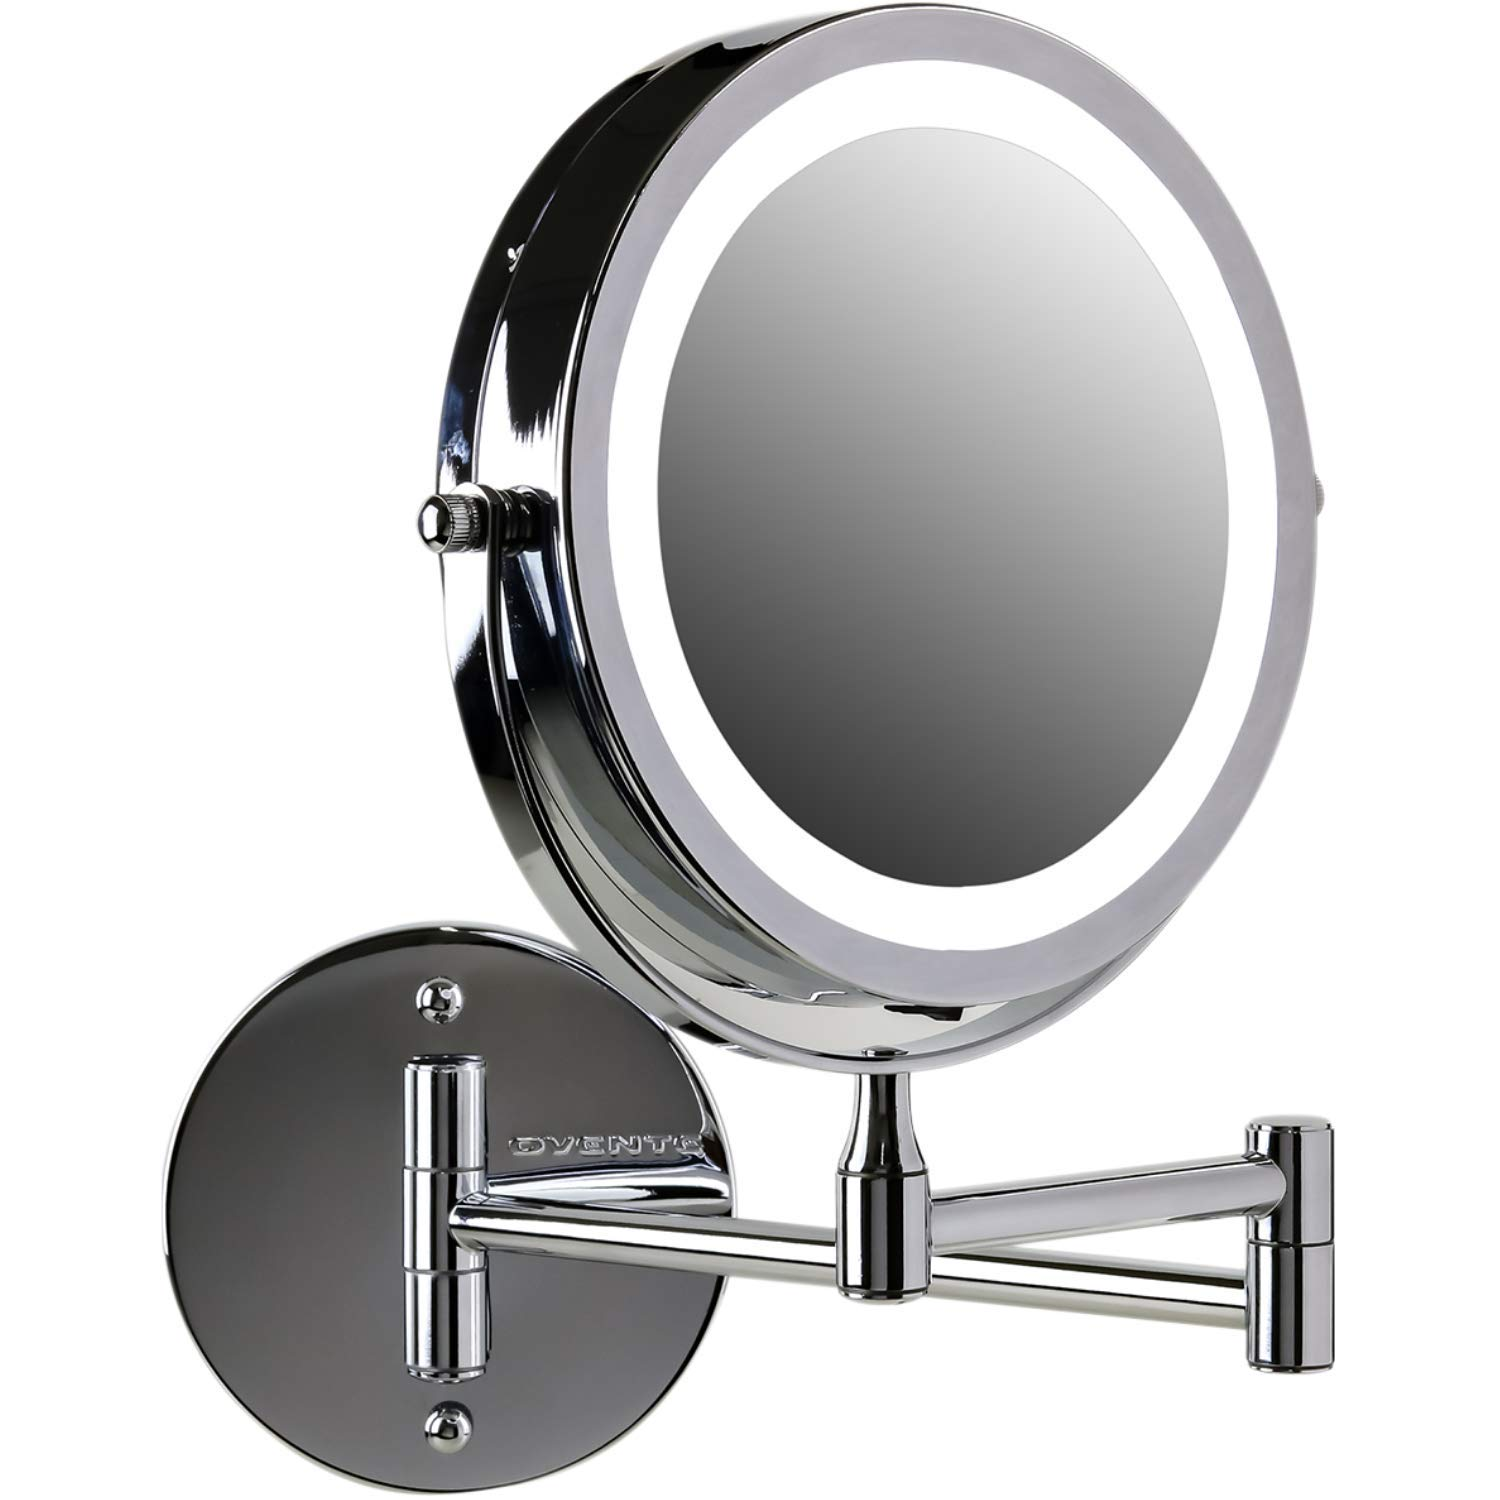 "OVENTE Wall Mount LED Lighted Makeup Mirror, Battery Operated, 1x/10x Magnification, 7"", Polished Chrome (MFW70CH1x10x)"